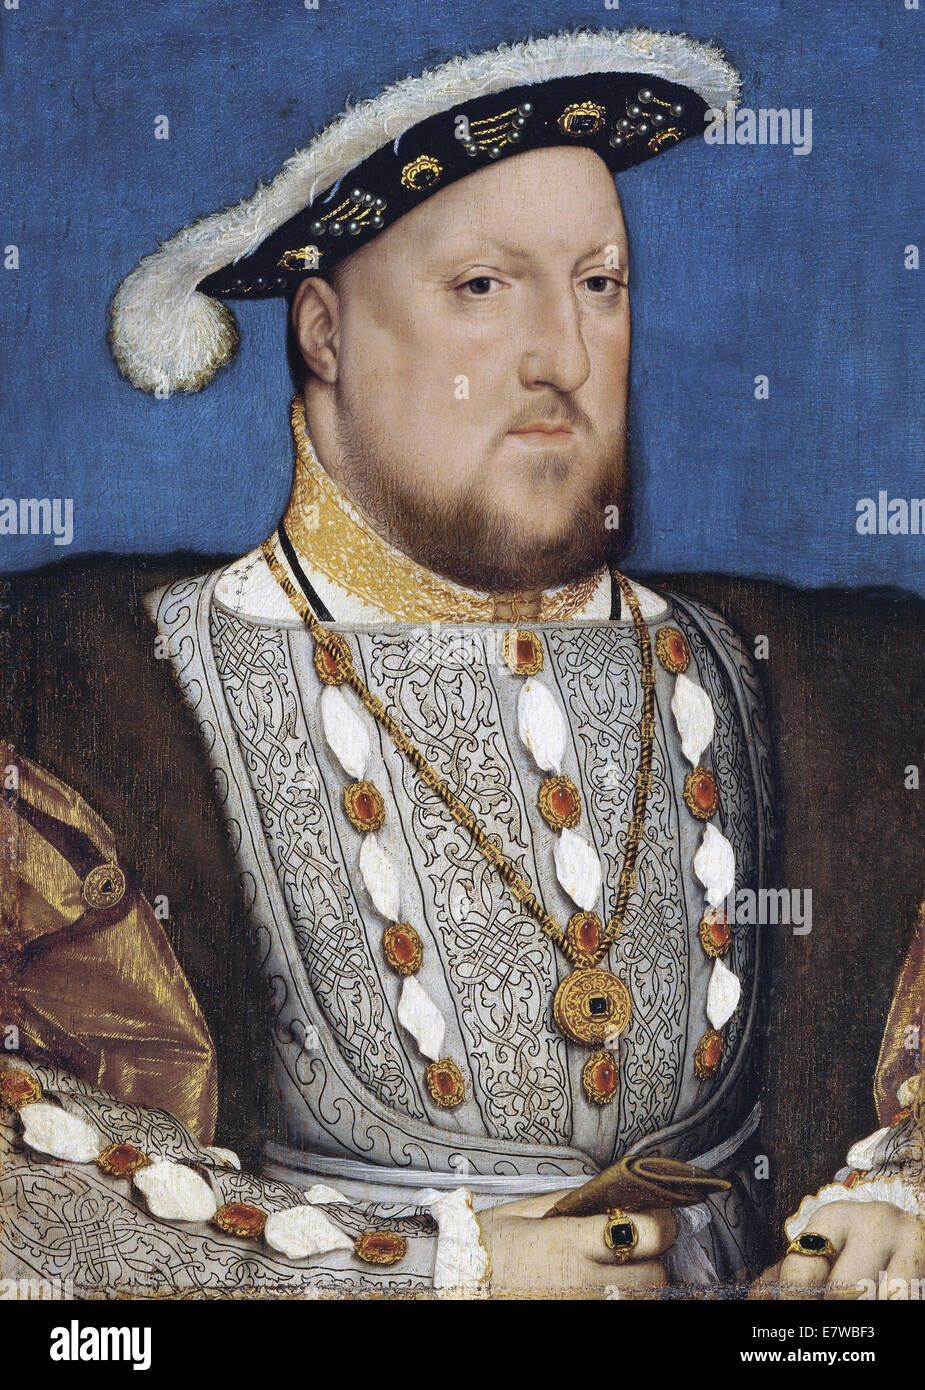 HENRY VIII by Hans Holbein the Younger about 1536 - Stock Image